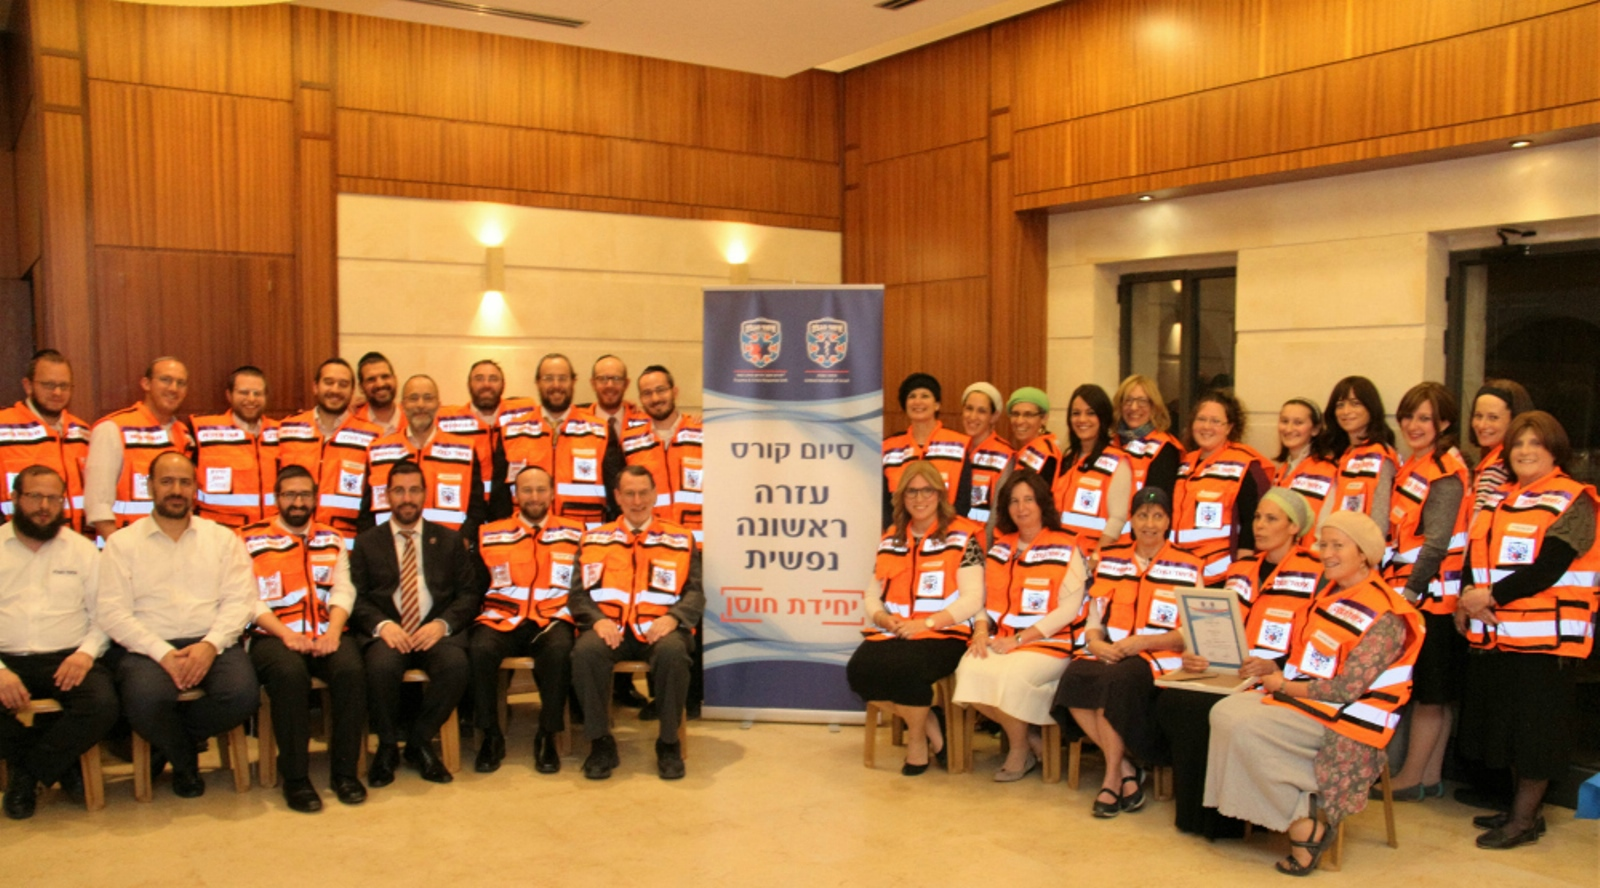 Firat graduating class of United Hatzalah's psychotrauma unit. Photo: courtesy